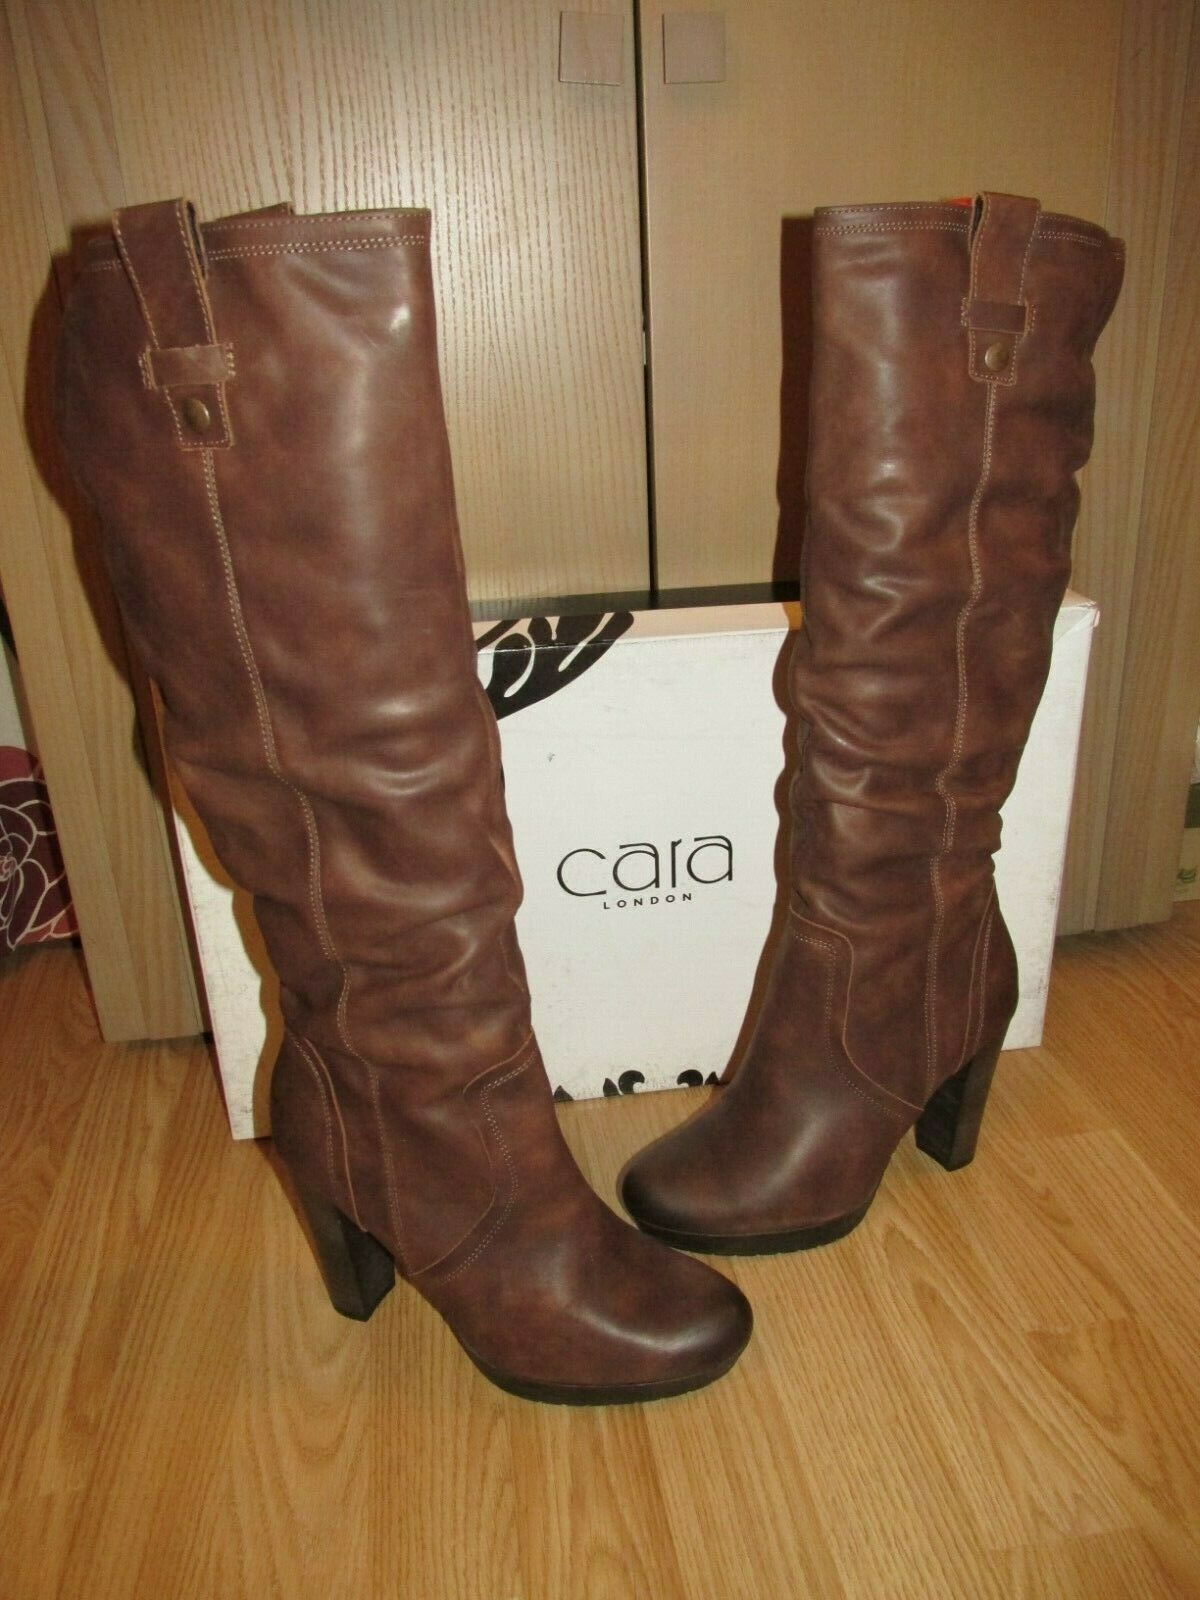 NEW BNWB CARA Womens Brown Leather Boots   Fleece Lining RRP